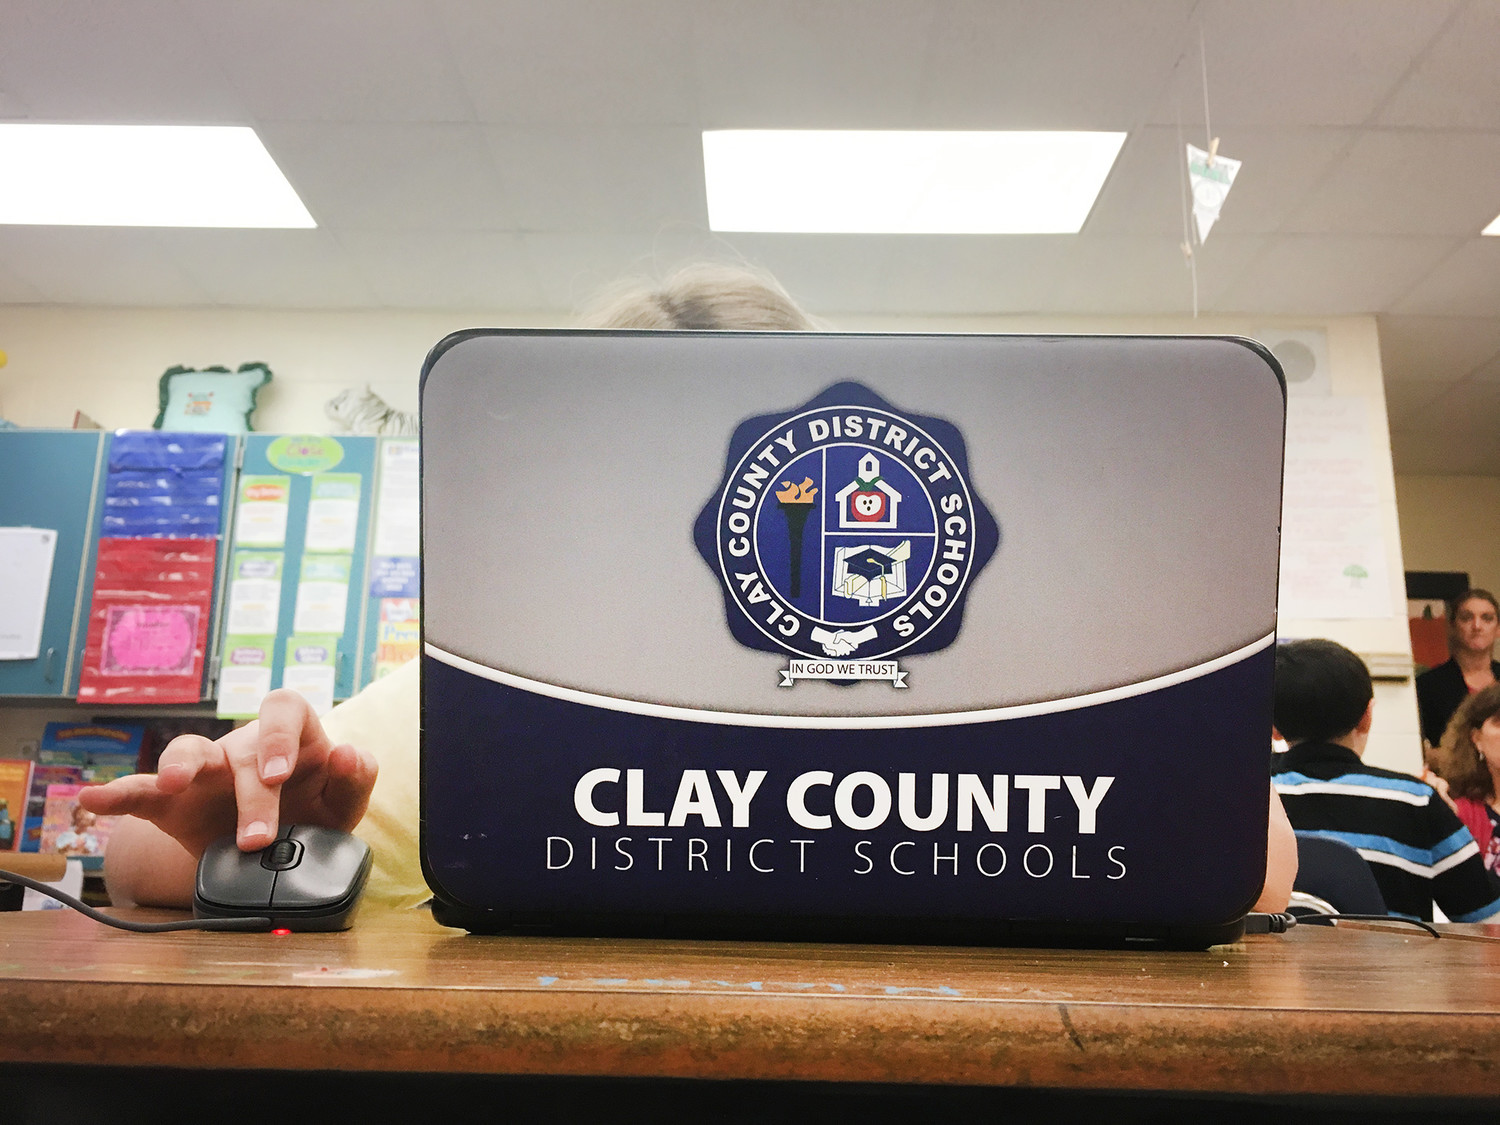 The Clay County school district has placed at least six Chromebooks in each classroom throughout the district as part of their larger effort to bring all the schools up to a higher standard of technological connectivity.